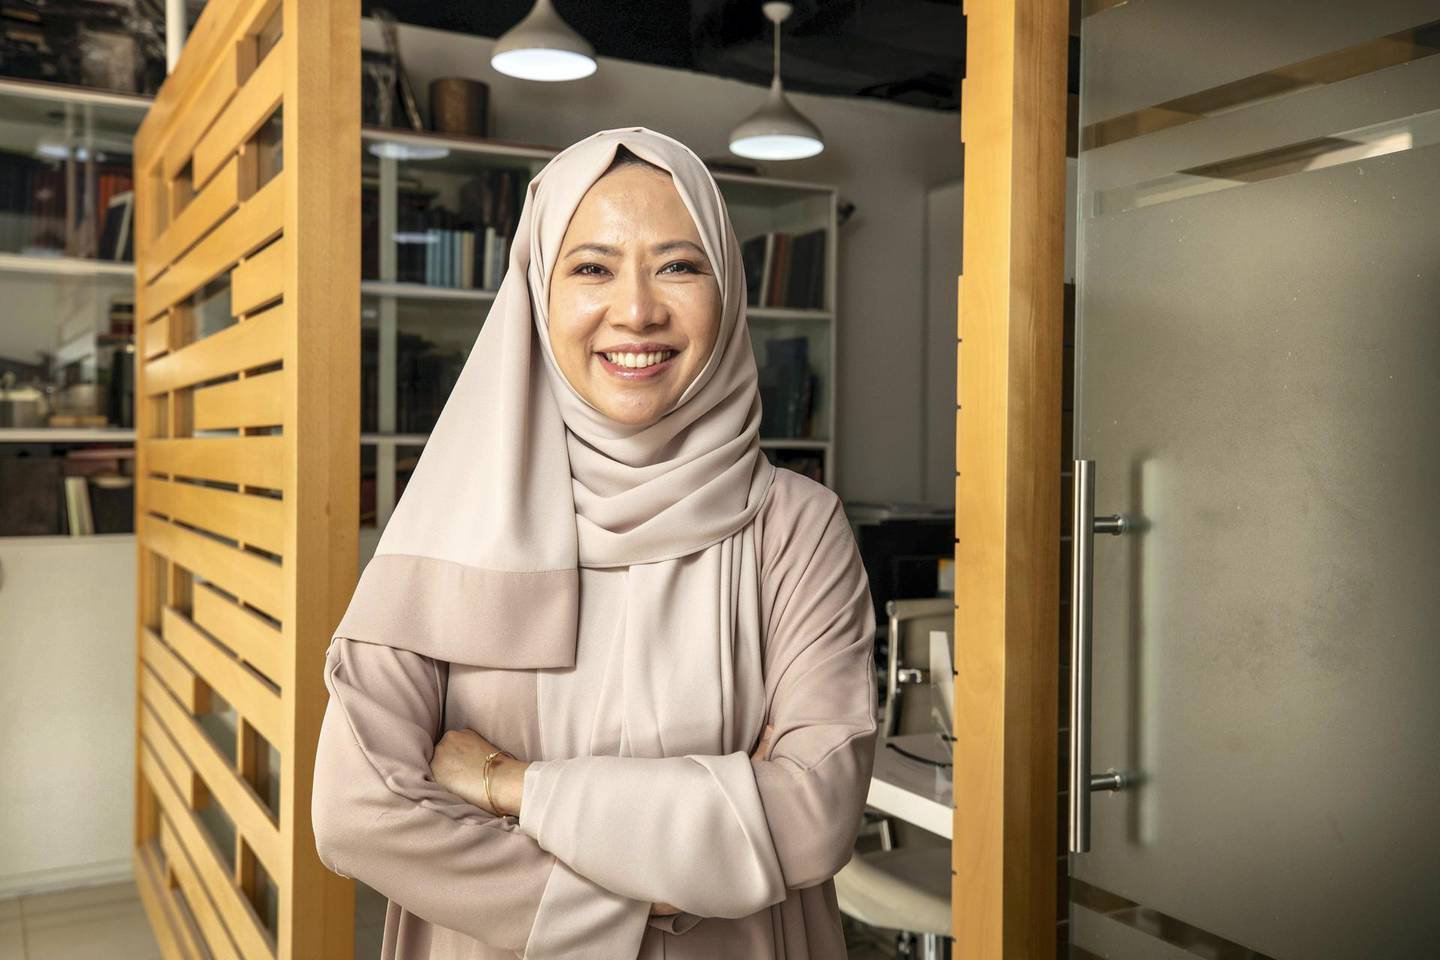 DUBAI, UNITED ARAB EMIRATES. 21 JUNE 2020. Iman Suguitan,  founder of Ahsant, a hotel supplies company, who started her business during the last recession and is starting another firm now. For a feature on start-ups launching during the pandemic. (Photo: Antonie Robertson/The National) Journalist: David Dunn. Section: Business.